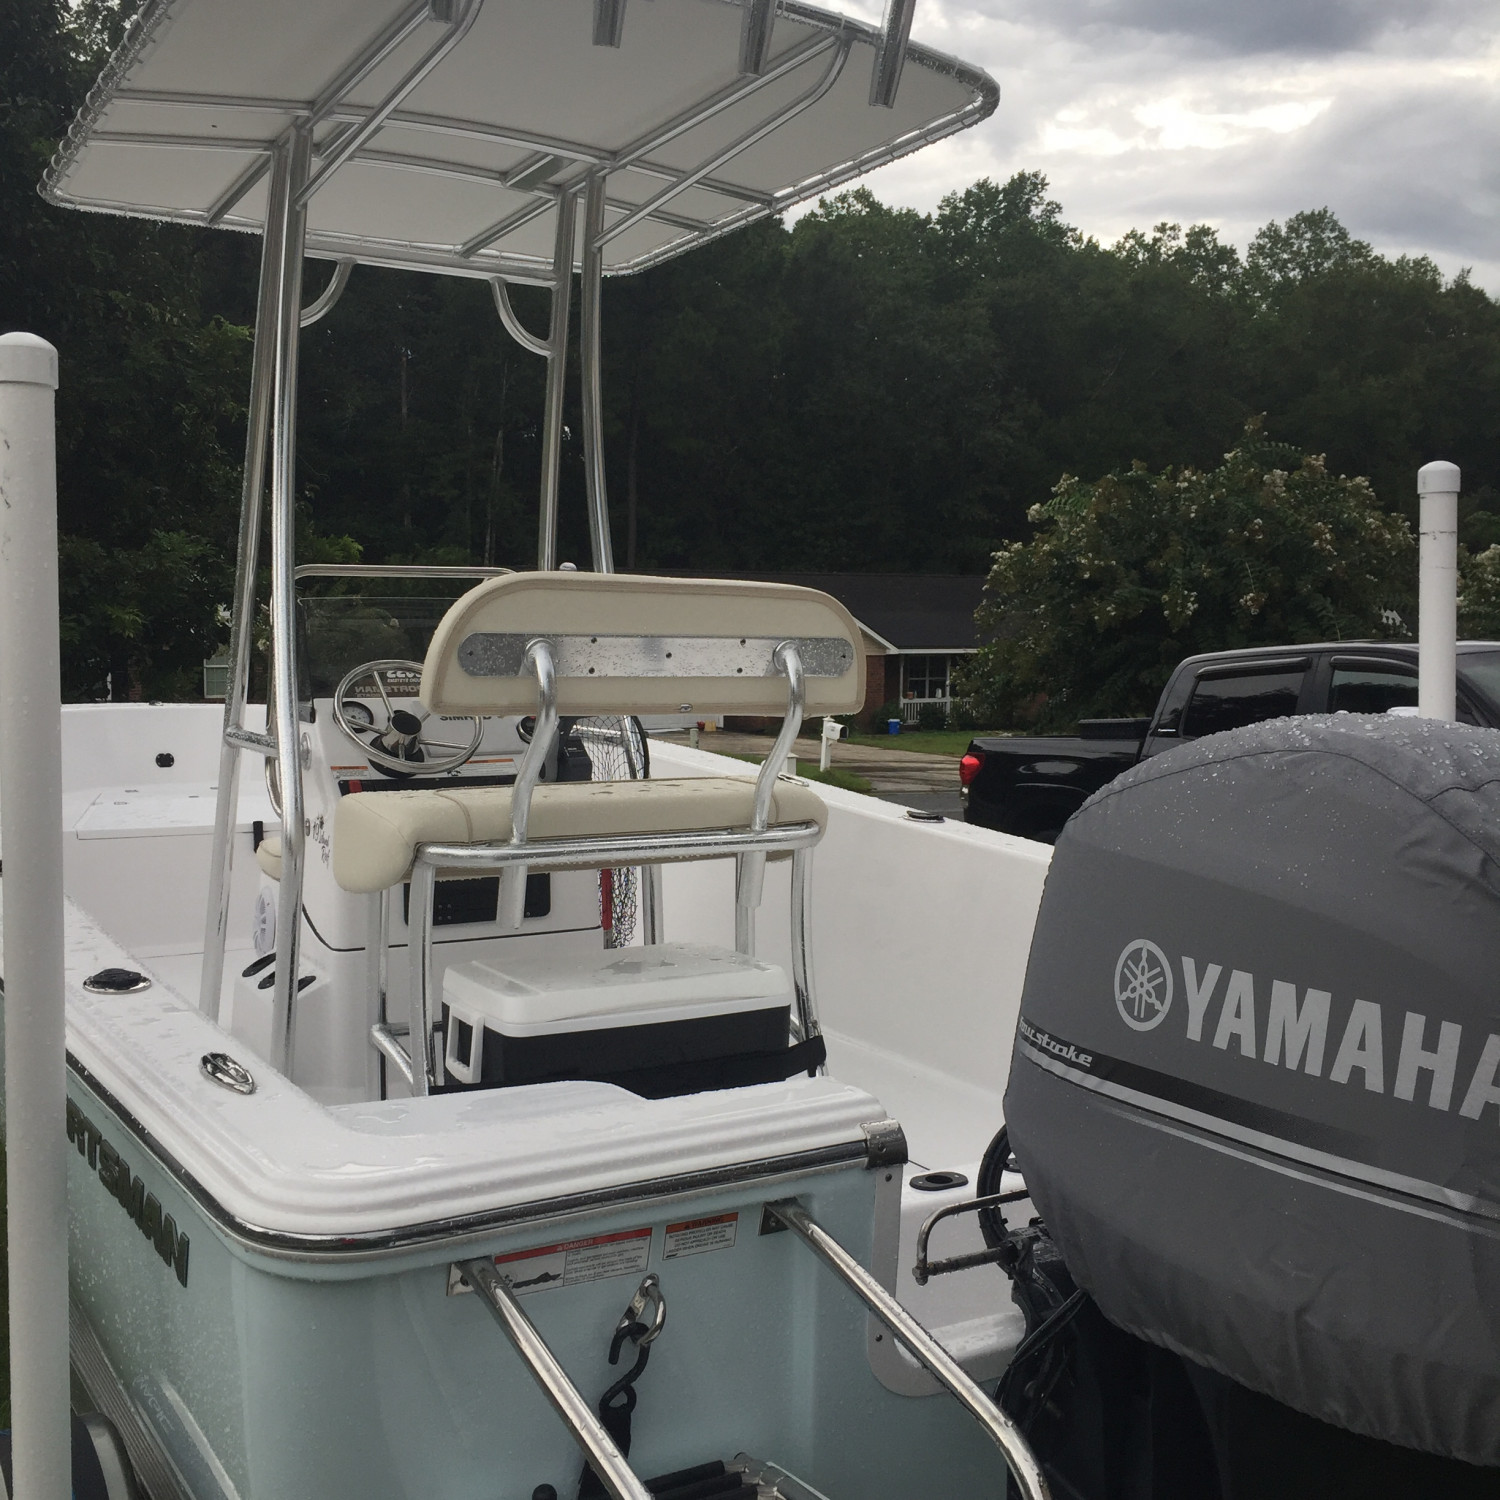 Title: Waiting for the Weekend! - On board their Sportsman Island Reef 19 Center Console - Location: Rincon, GA. Participating in the Photo Contest #SportsmanNovember2017